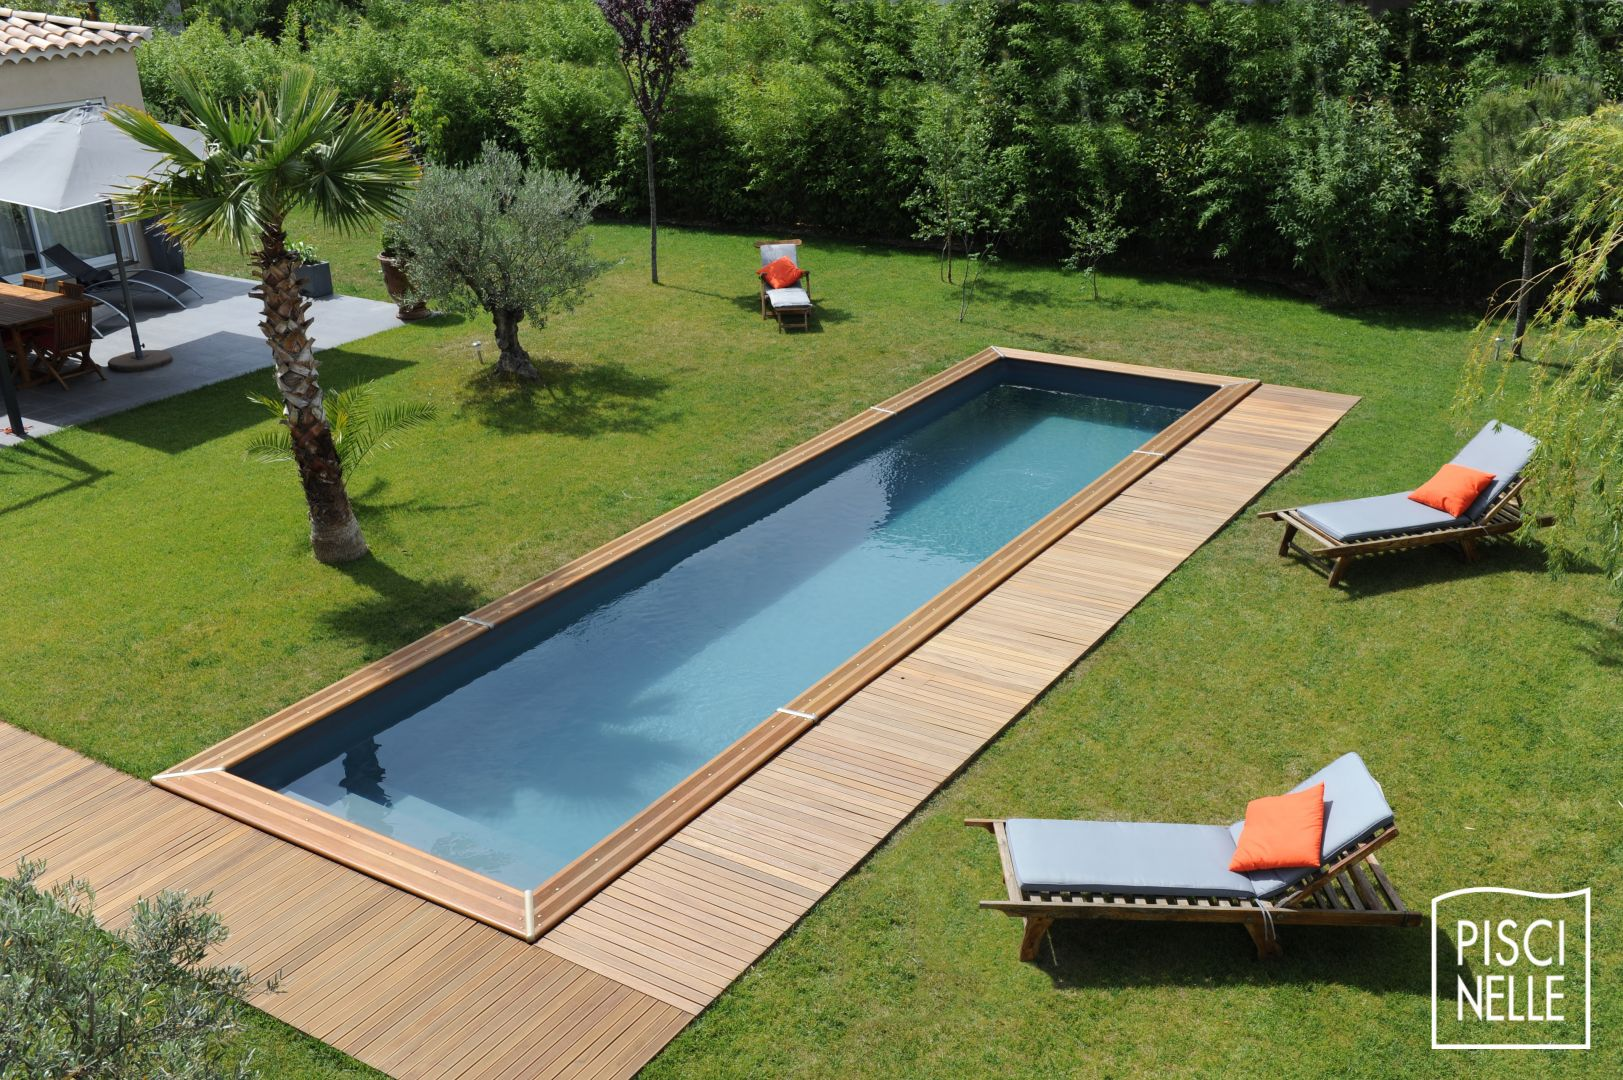 Piscine enterr e les piscines enterr es en kit par for Kit piscine enterree